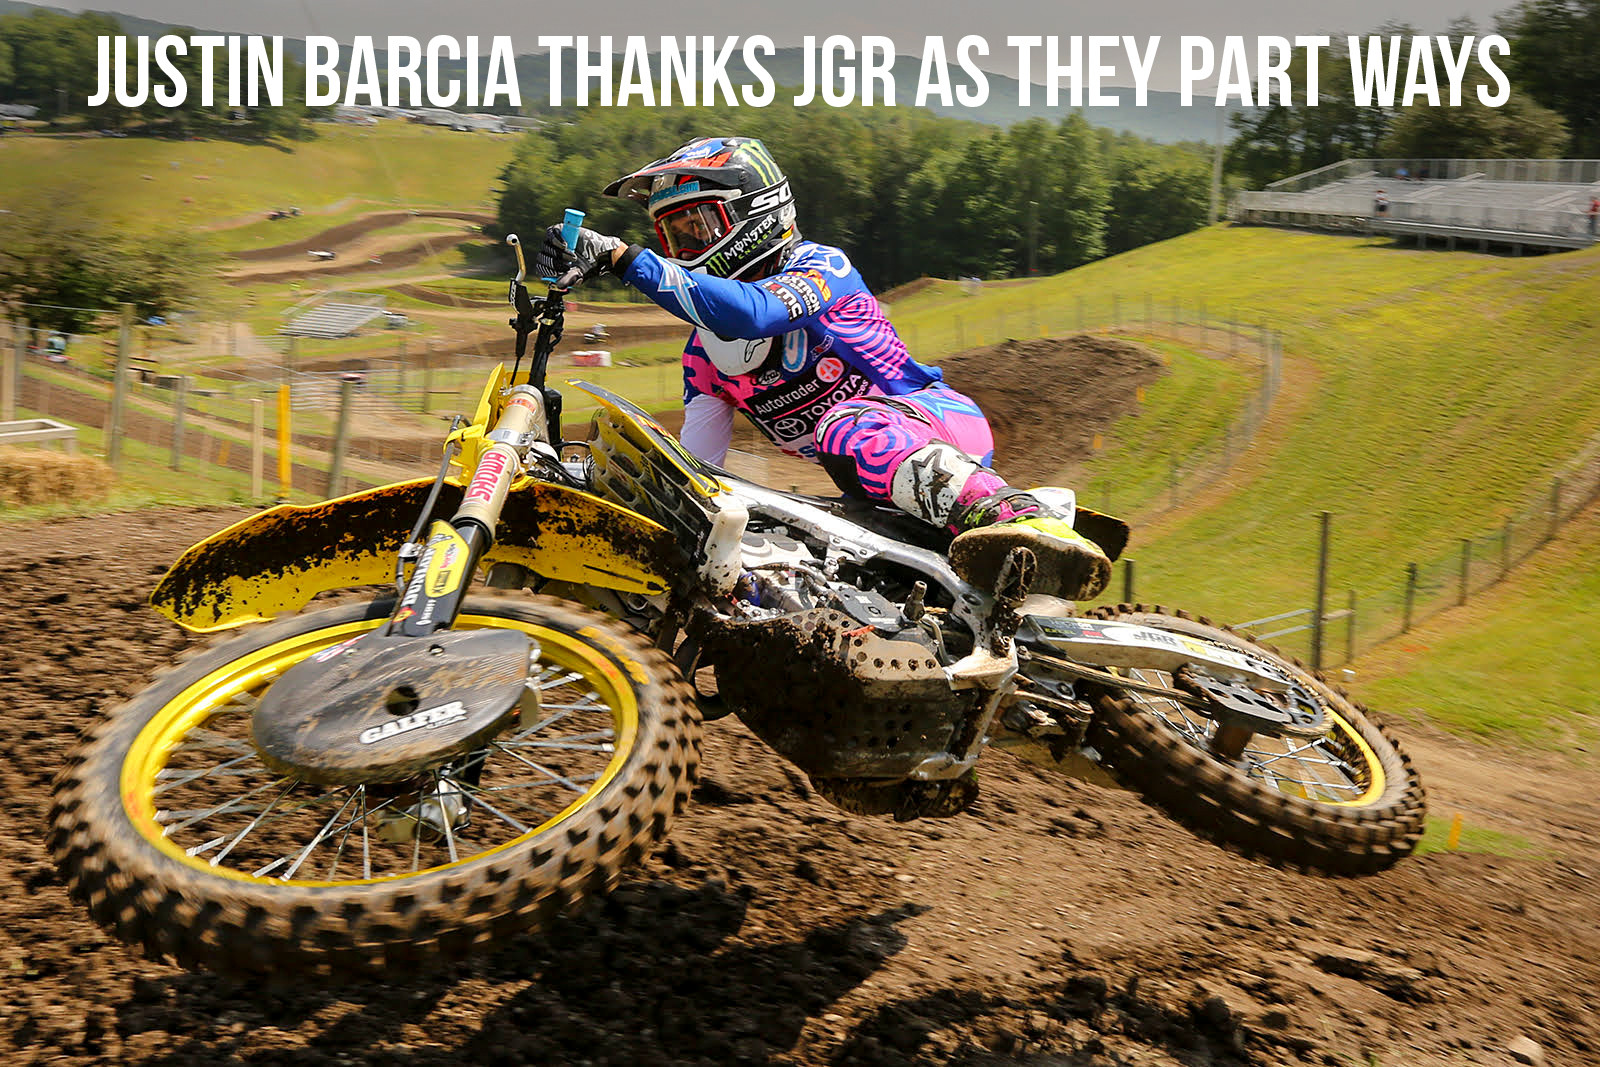 Justin Barcia Thanks JGR MX as They Part Ways at Season's End